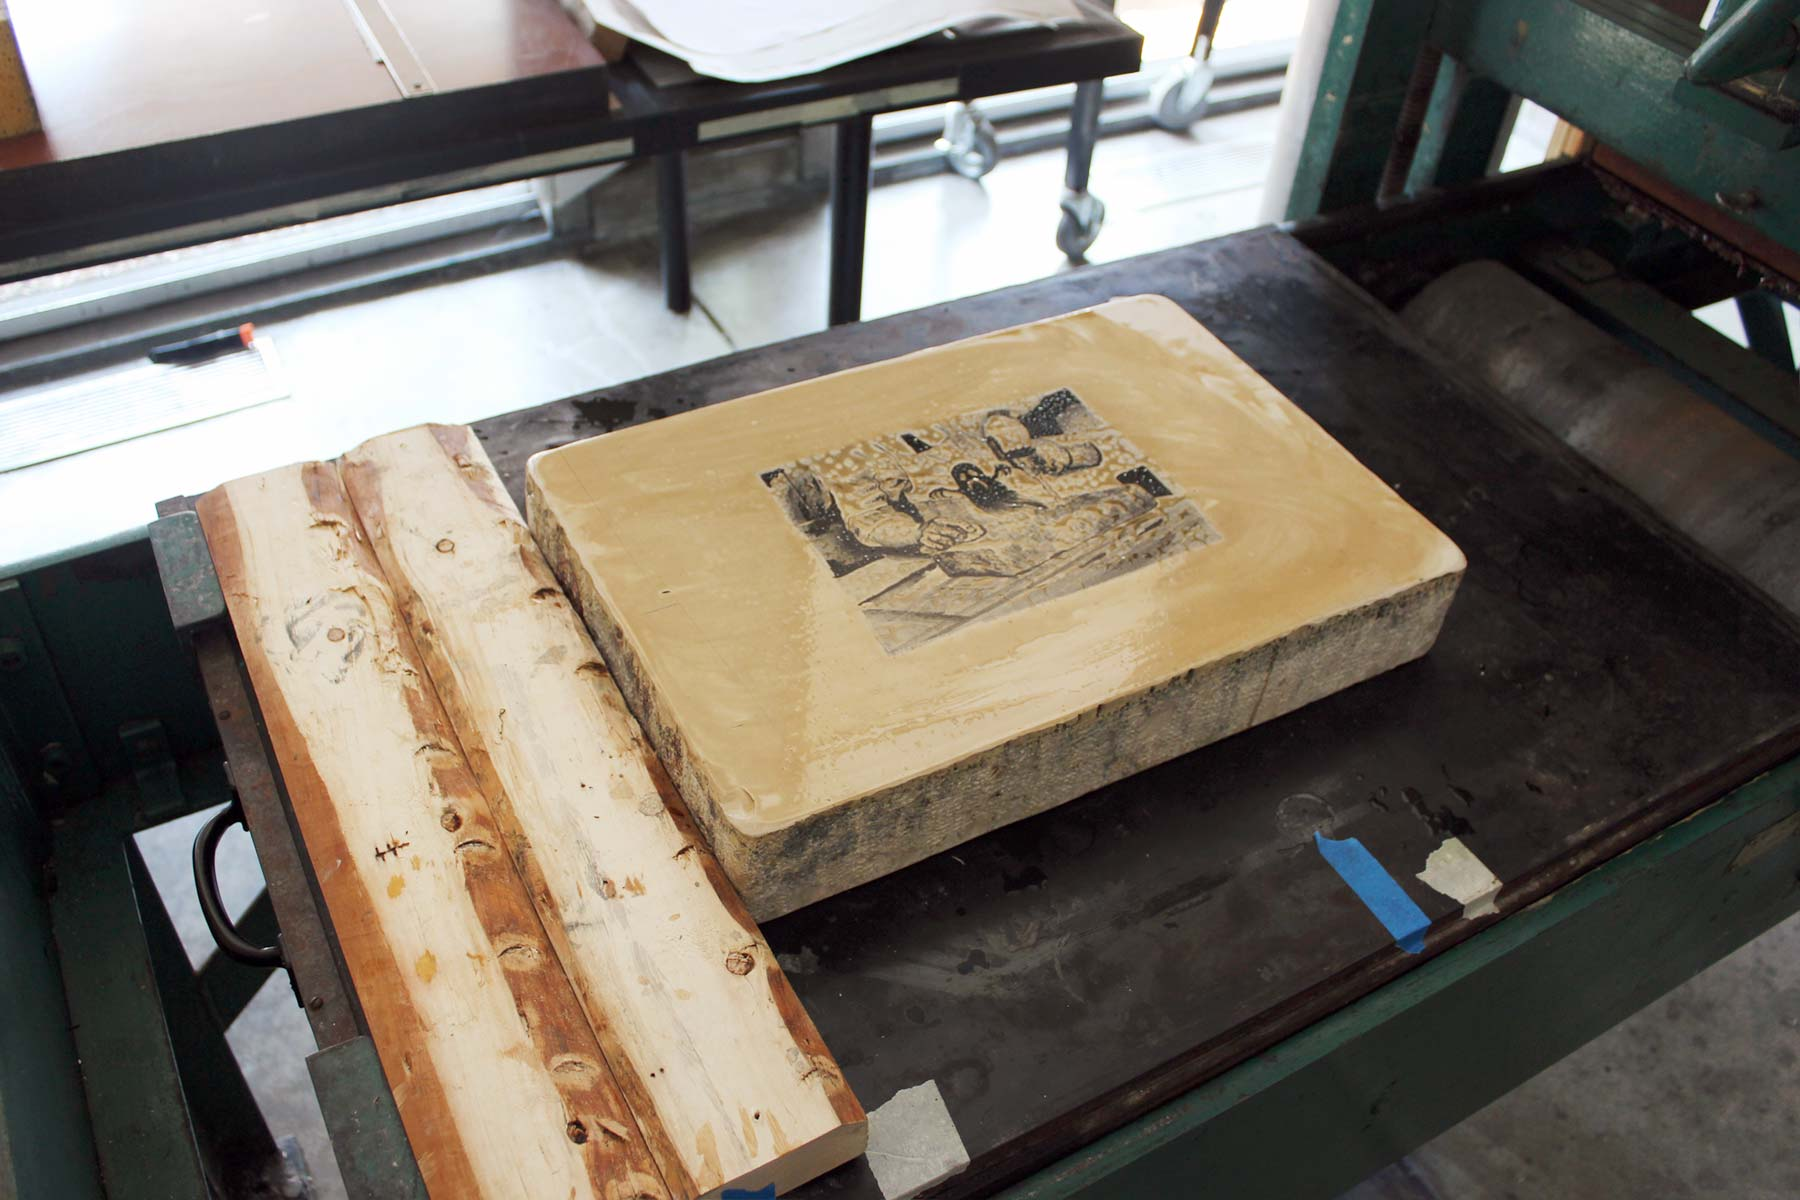 A lithography block depicts an image of a lithographer making a lithograph.